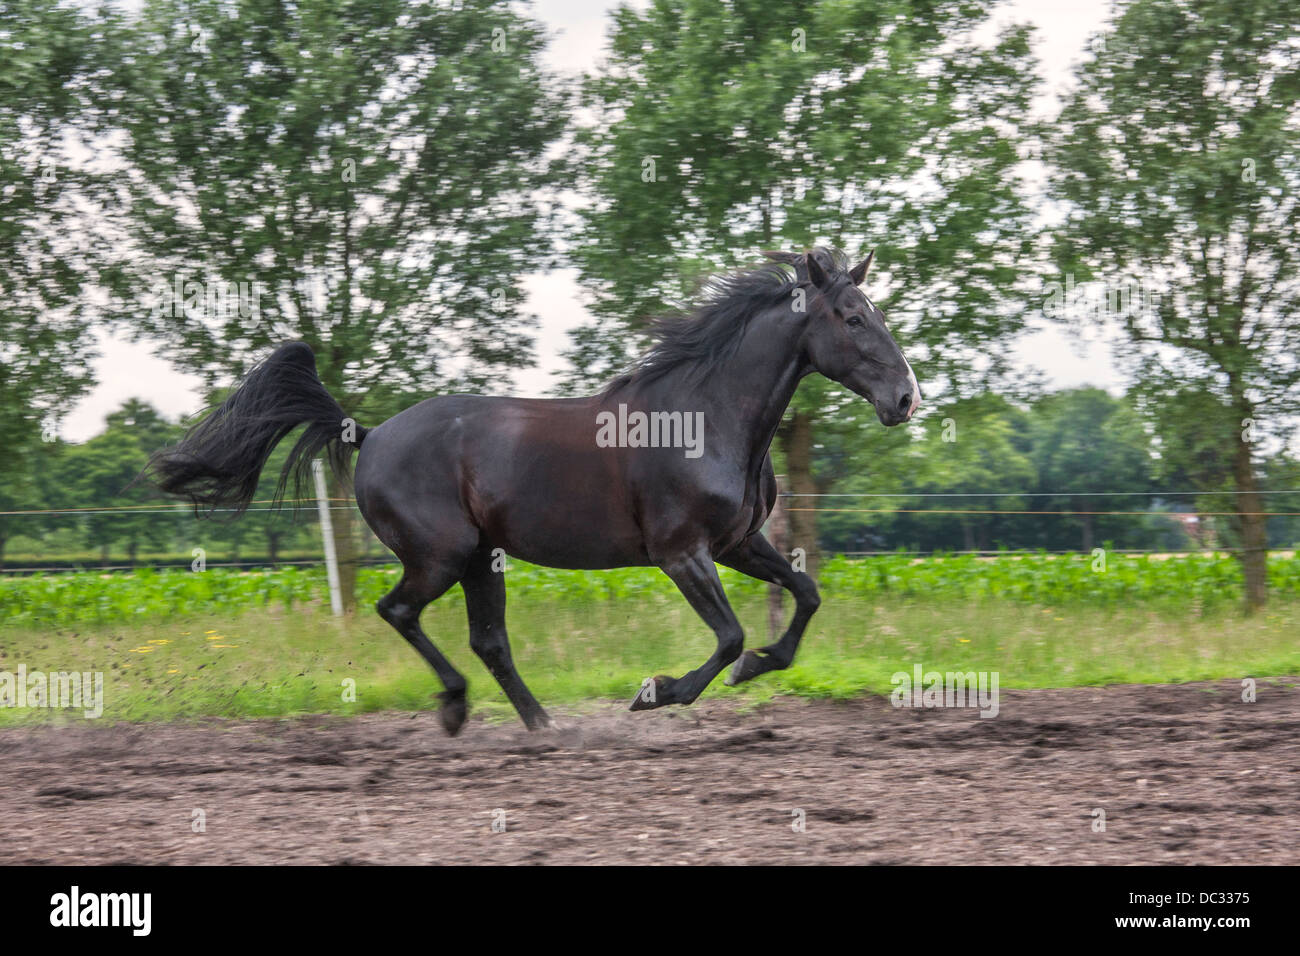 Brown horse galloping in field, gallop is a four-beat gait - Stock Image